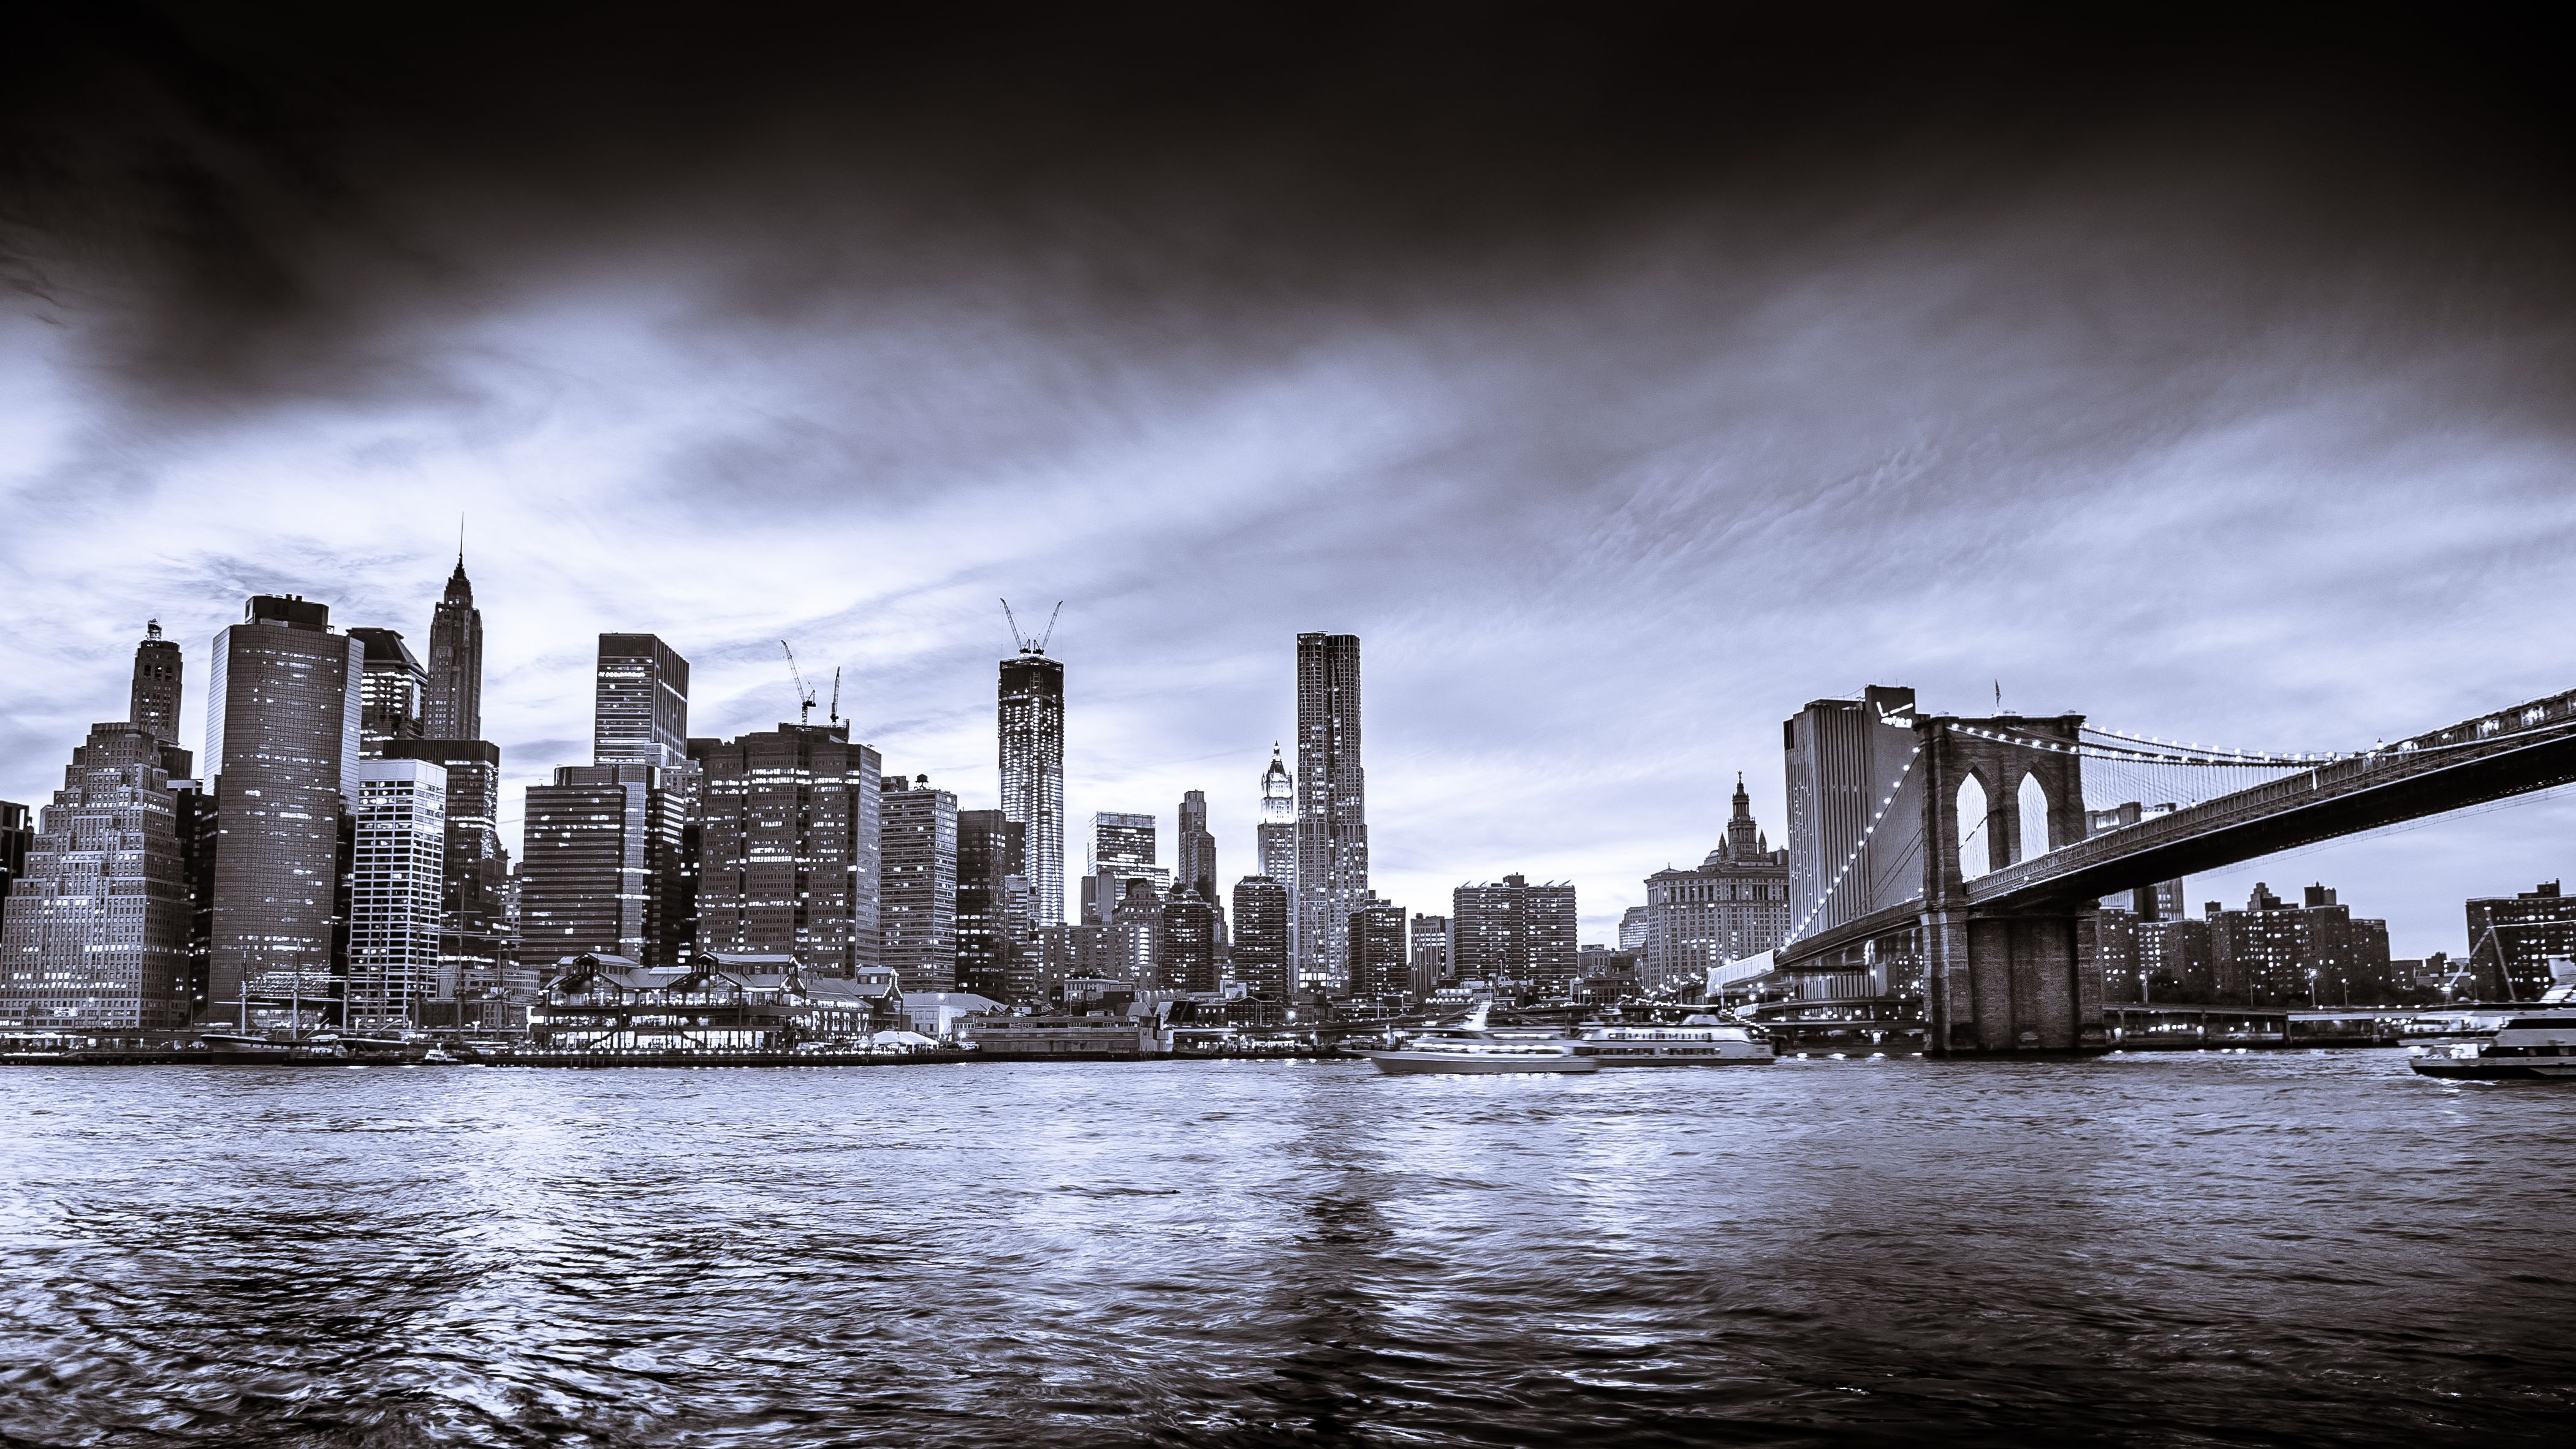 New york city skyline photography wallpaper hd 7288 wallpaper city new york city skyline photography wallpaper voltagebd Gallery